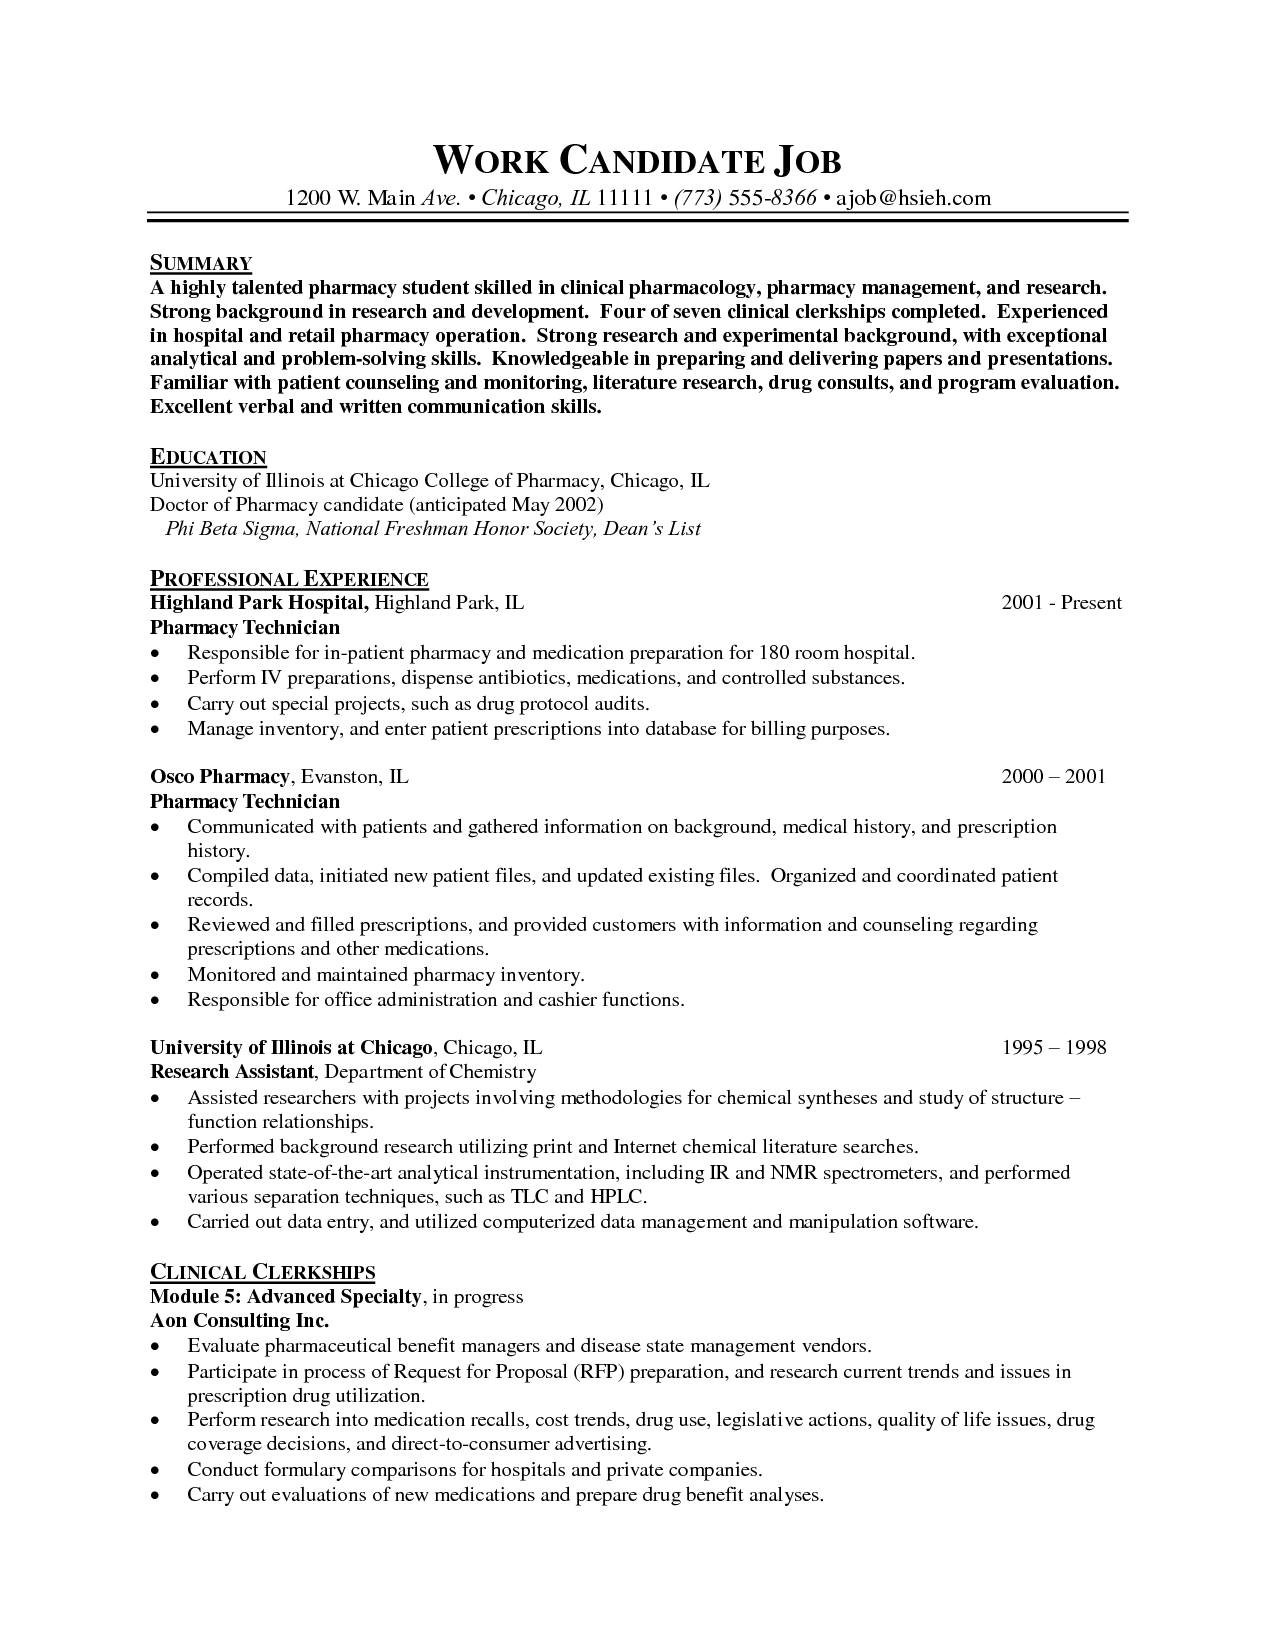 Information Technology Resume Template Professional Resume Cover Letter Sample  Get Instant Risk Free